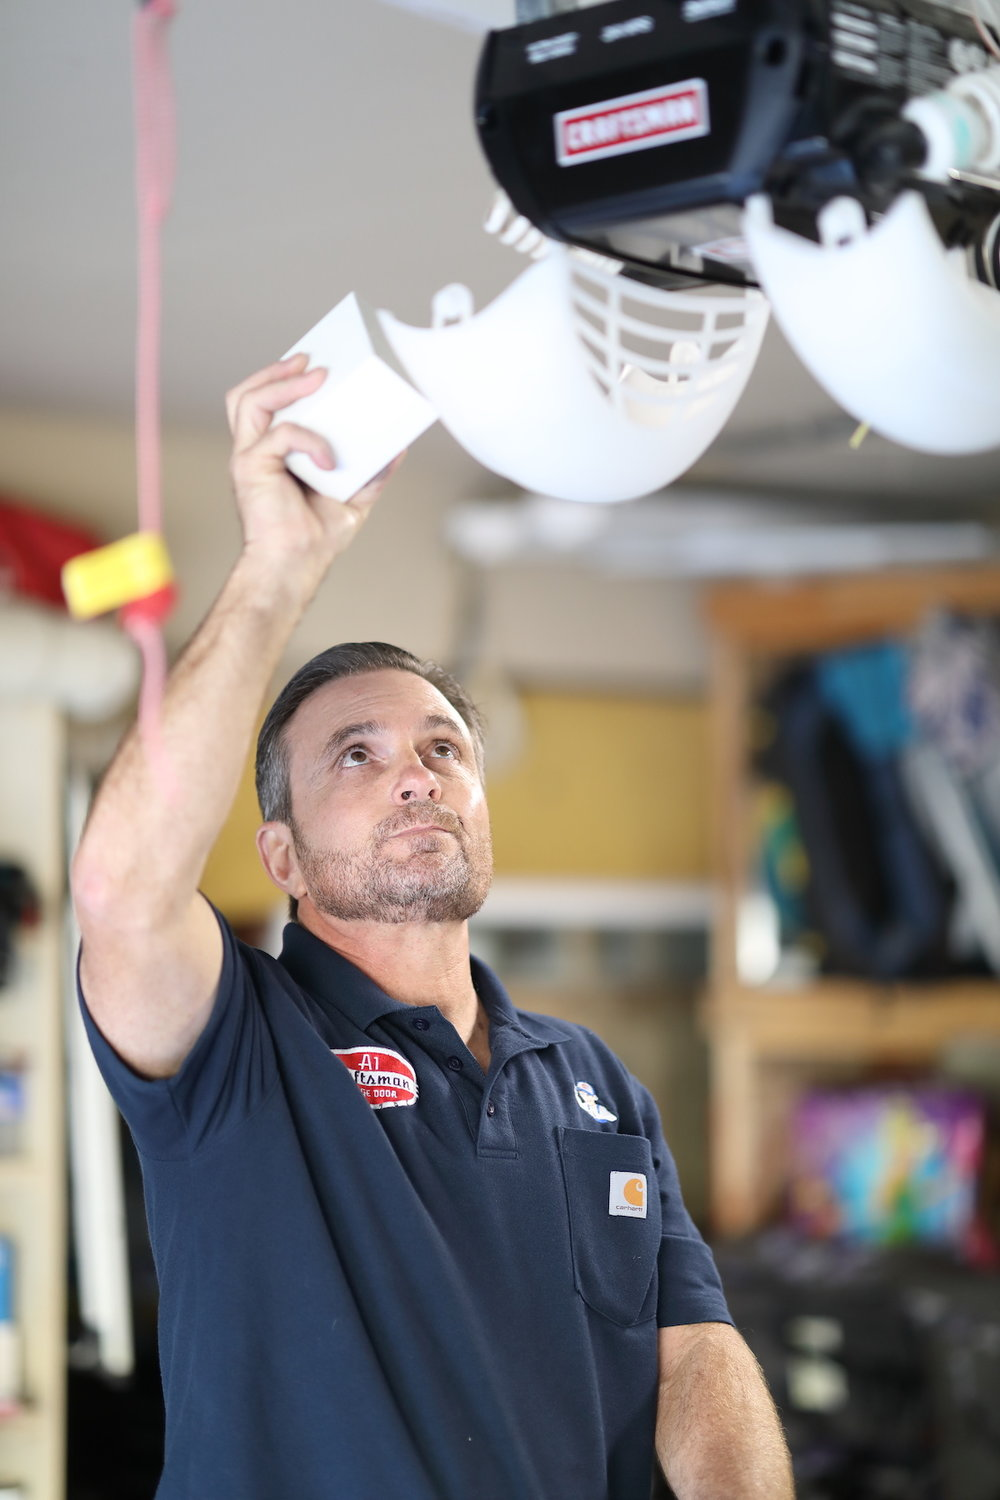 About Us - A1 Craftsman Garage Door Service takes professionalism, experience, and customer service to the next level. We have over 15 years of experience in installing and repairing residential garage doors and opener systems in the Greater Sacramento, Solano County, and Contra Costa County areas.We install and repair garage doors and garage door openers, fix broken springs, offer spring adjustments, repair accident damage and track problems. Our professional technicians provide Smart options and emergency service. We offer quality workmanship and service for all your garage door needs.Greater Sacramento, Solano County, and Contra Costa County have never been in such capable hands when it comes to garage doors. With repairs and services of all makes and models, our team is the top choice. We guarantee customer satisfaction by getting the job done quickly and effectively.See what sets us apart from the rest by reaching out to us today. We look forward to serving you!